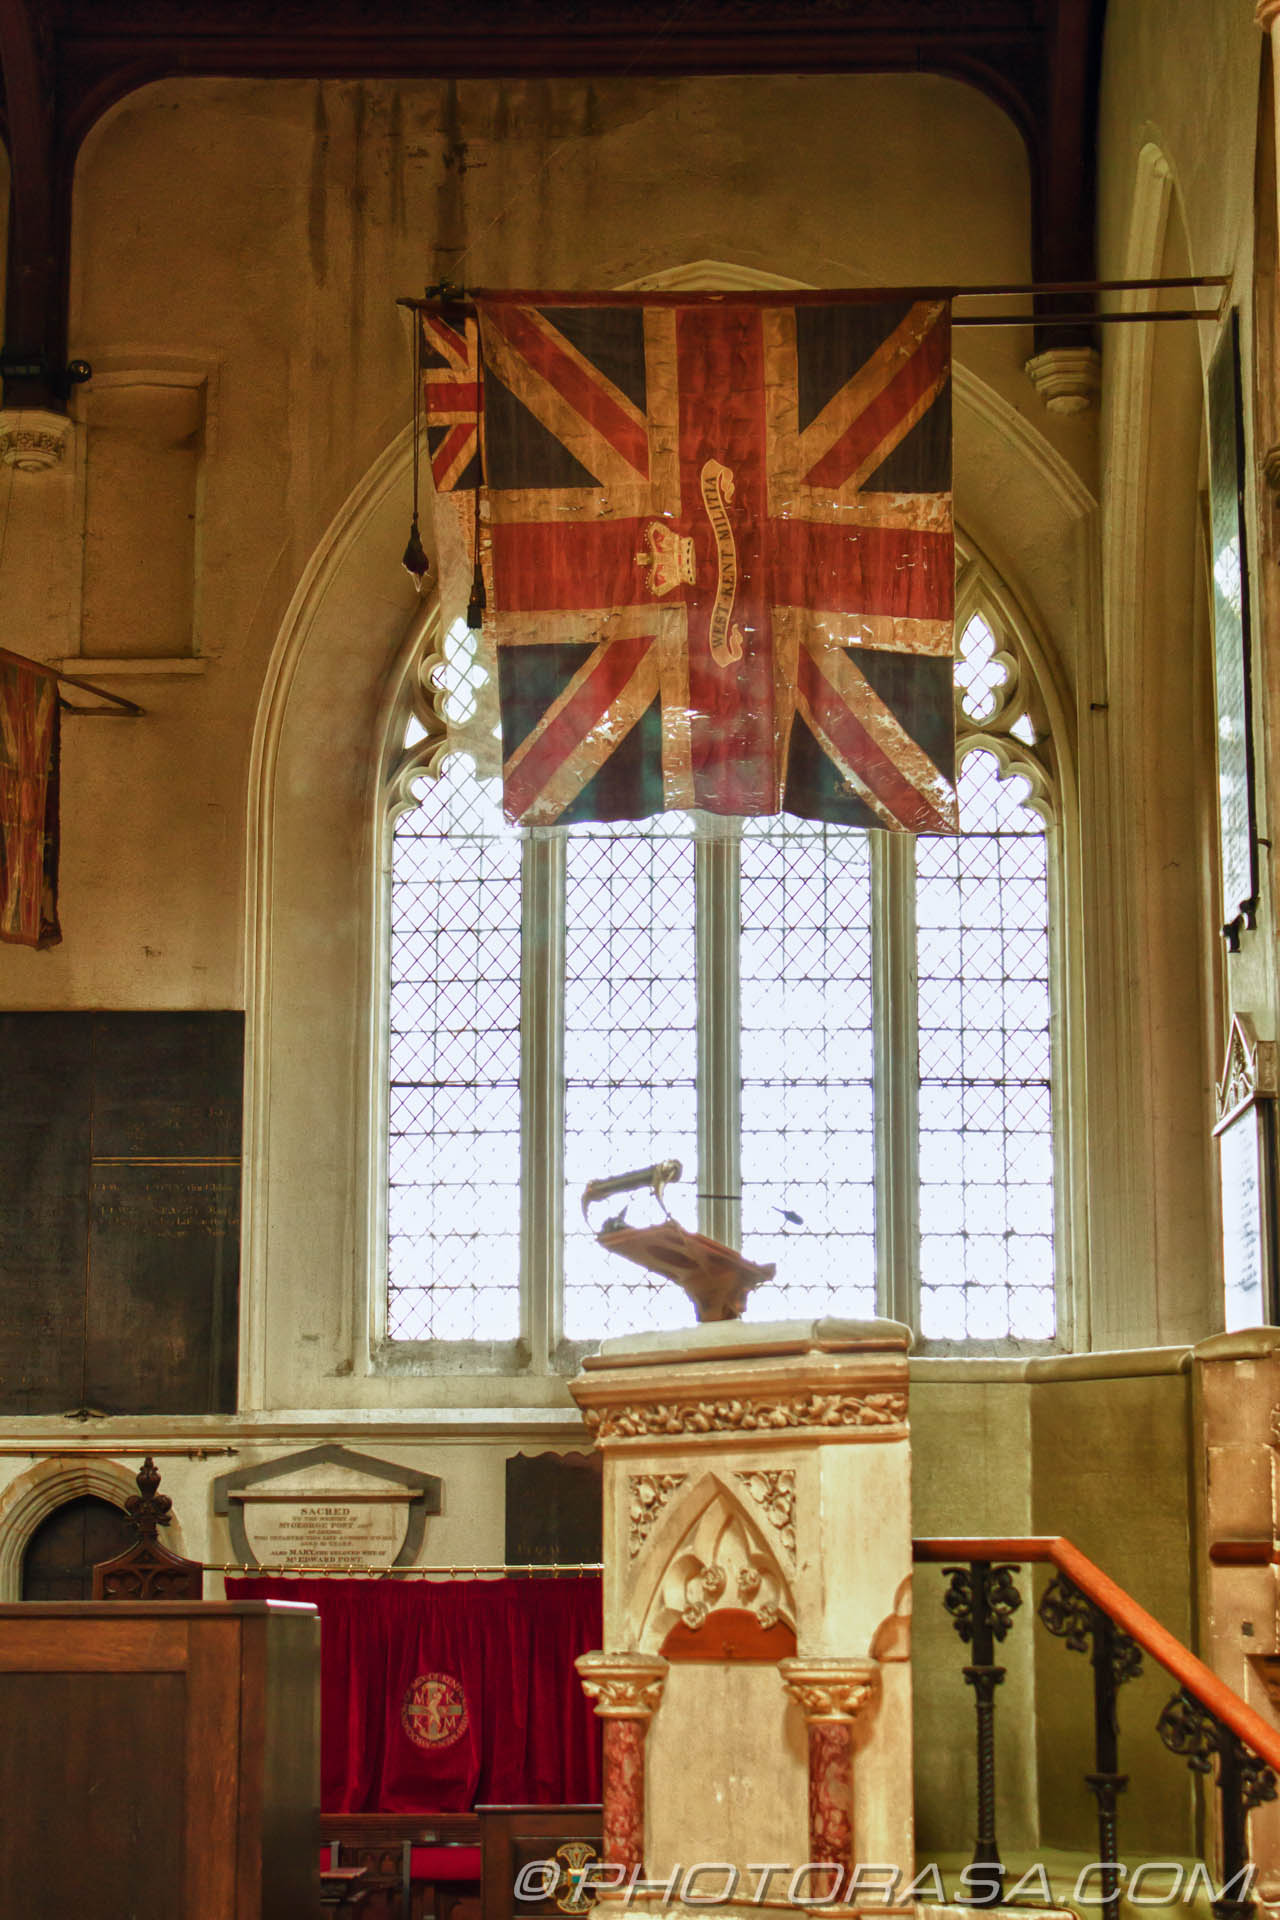 http://photorasa.com/inside-all-saints-church-in-maidstone/old-british-flag-in-church/